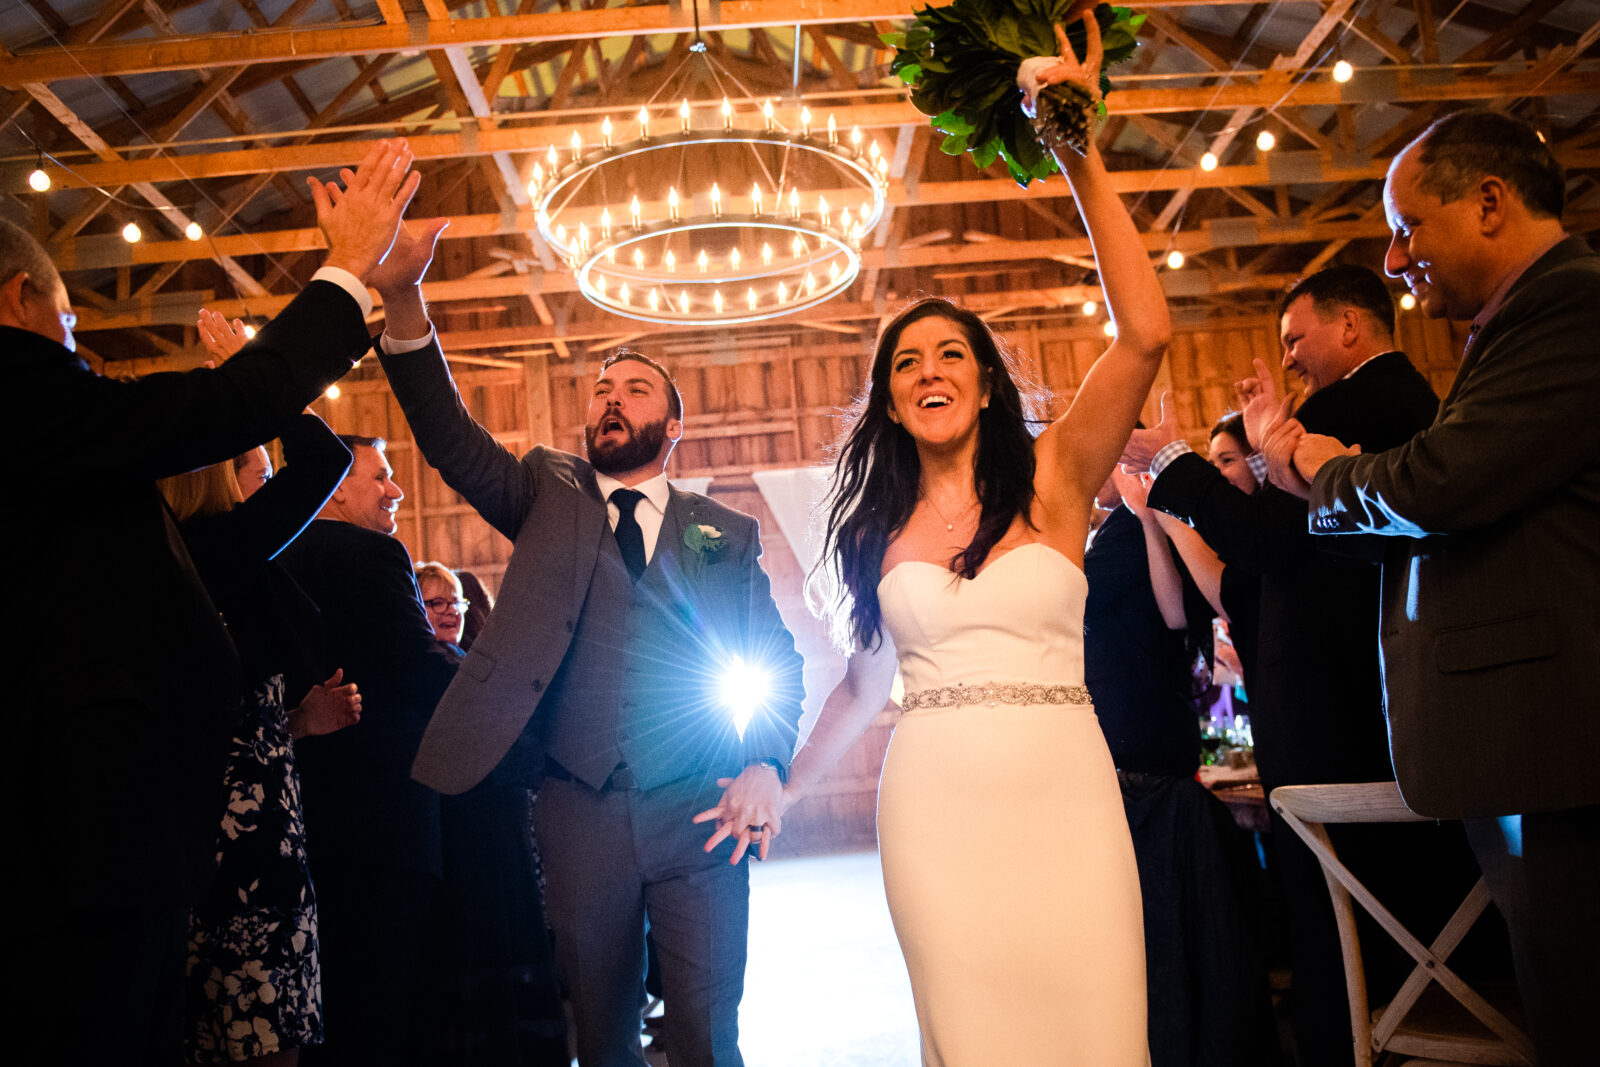 Bride and groom giving high-5's while entering their wedding reception